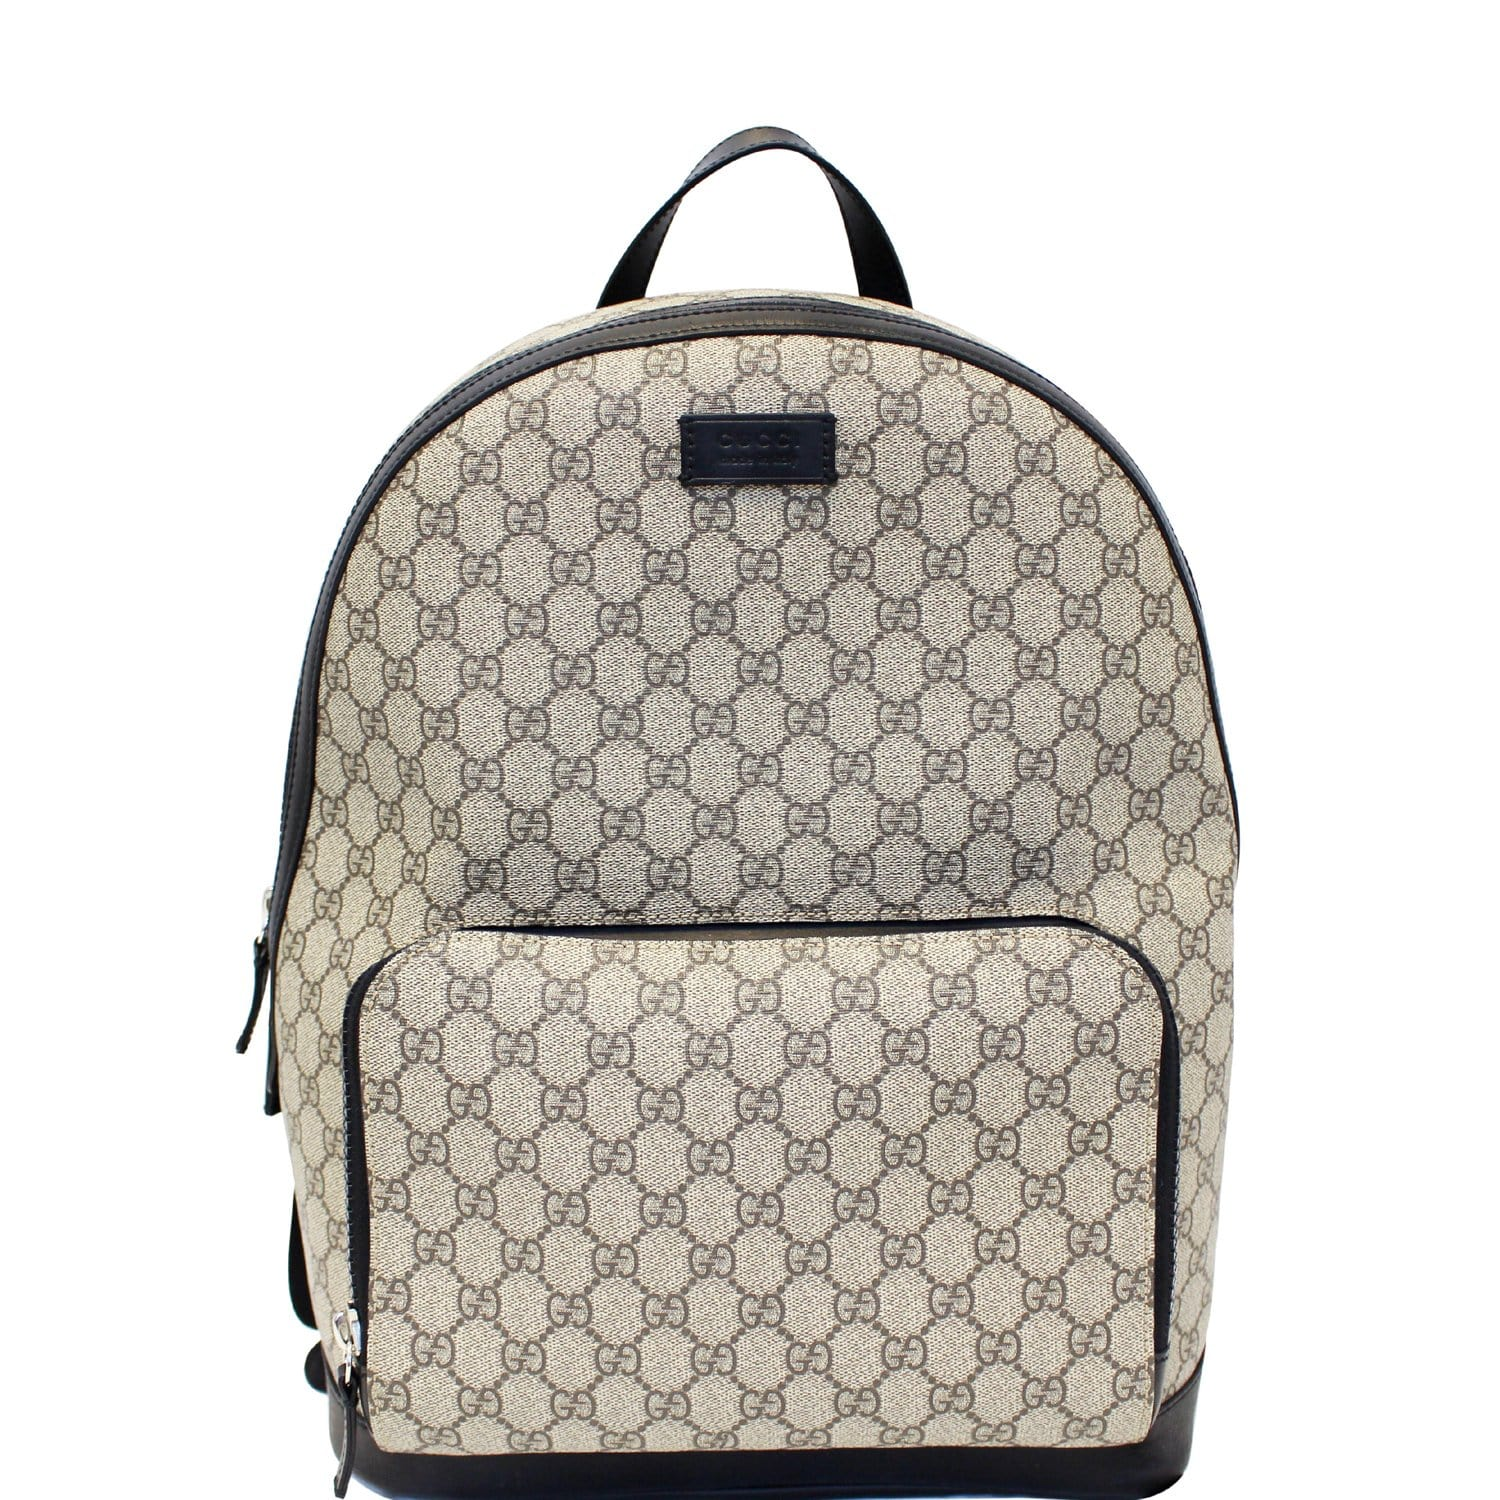 edc826b9419b GUCCI GG Monogram Supreme Backpack Bag-US